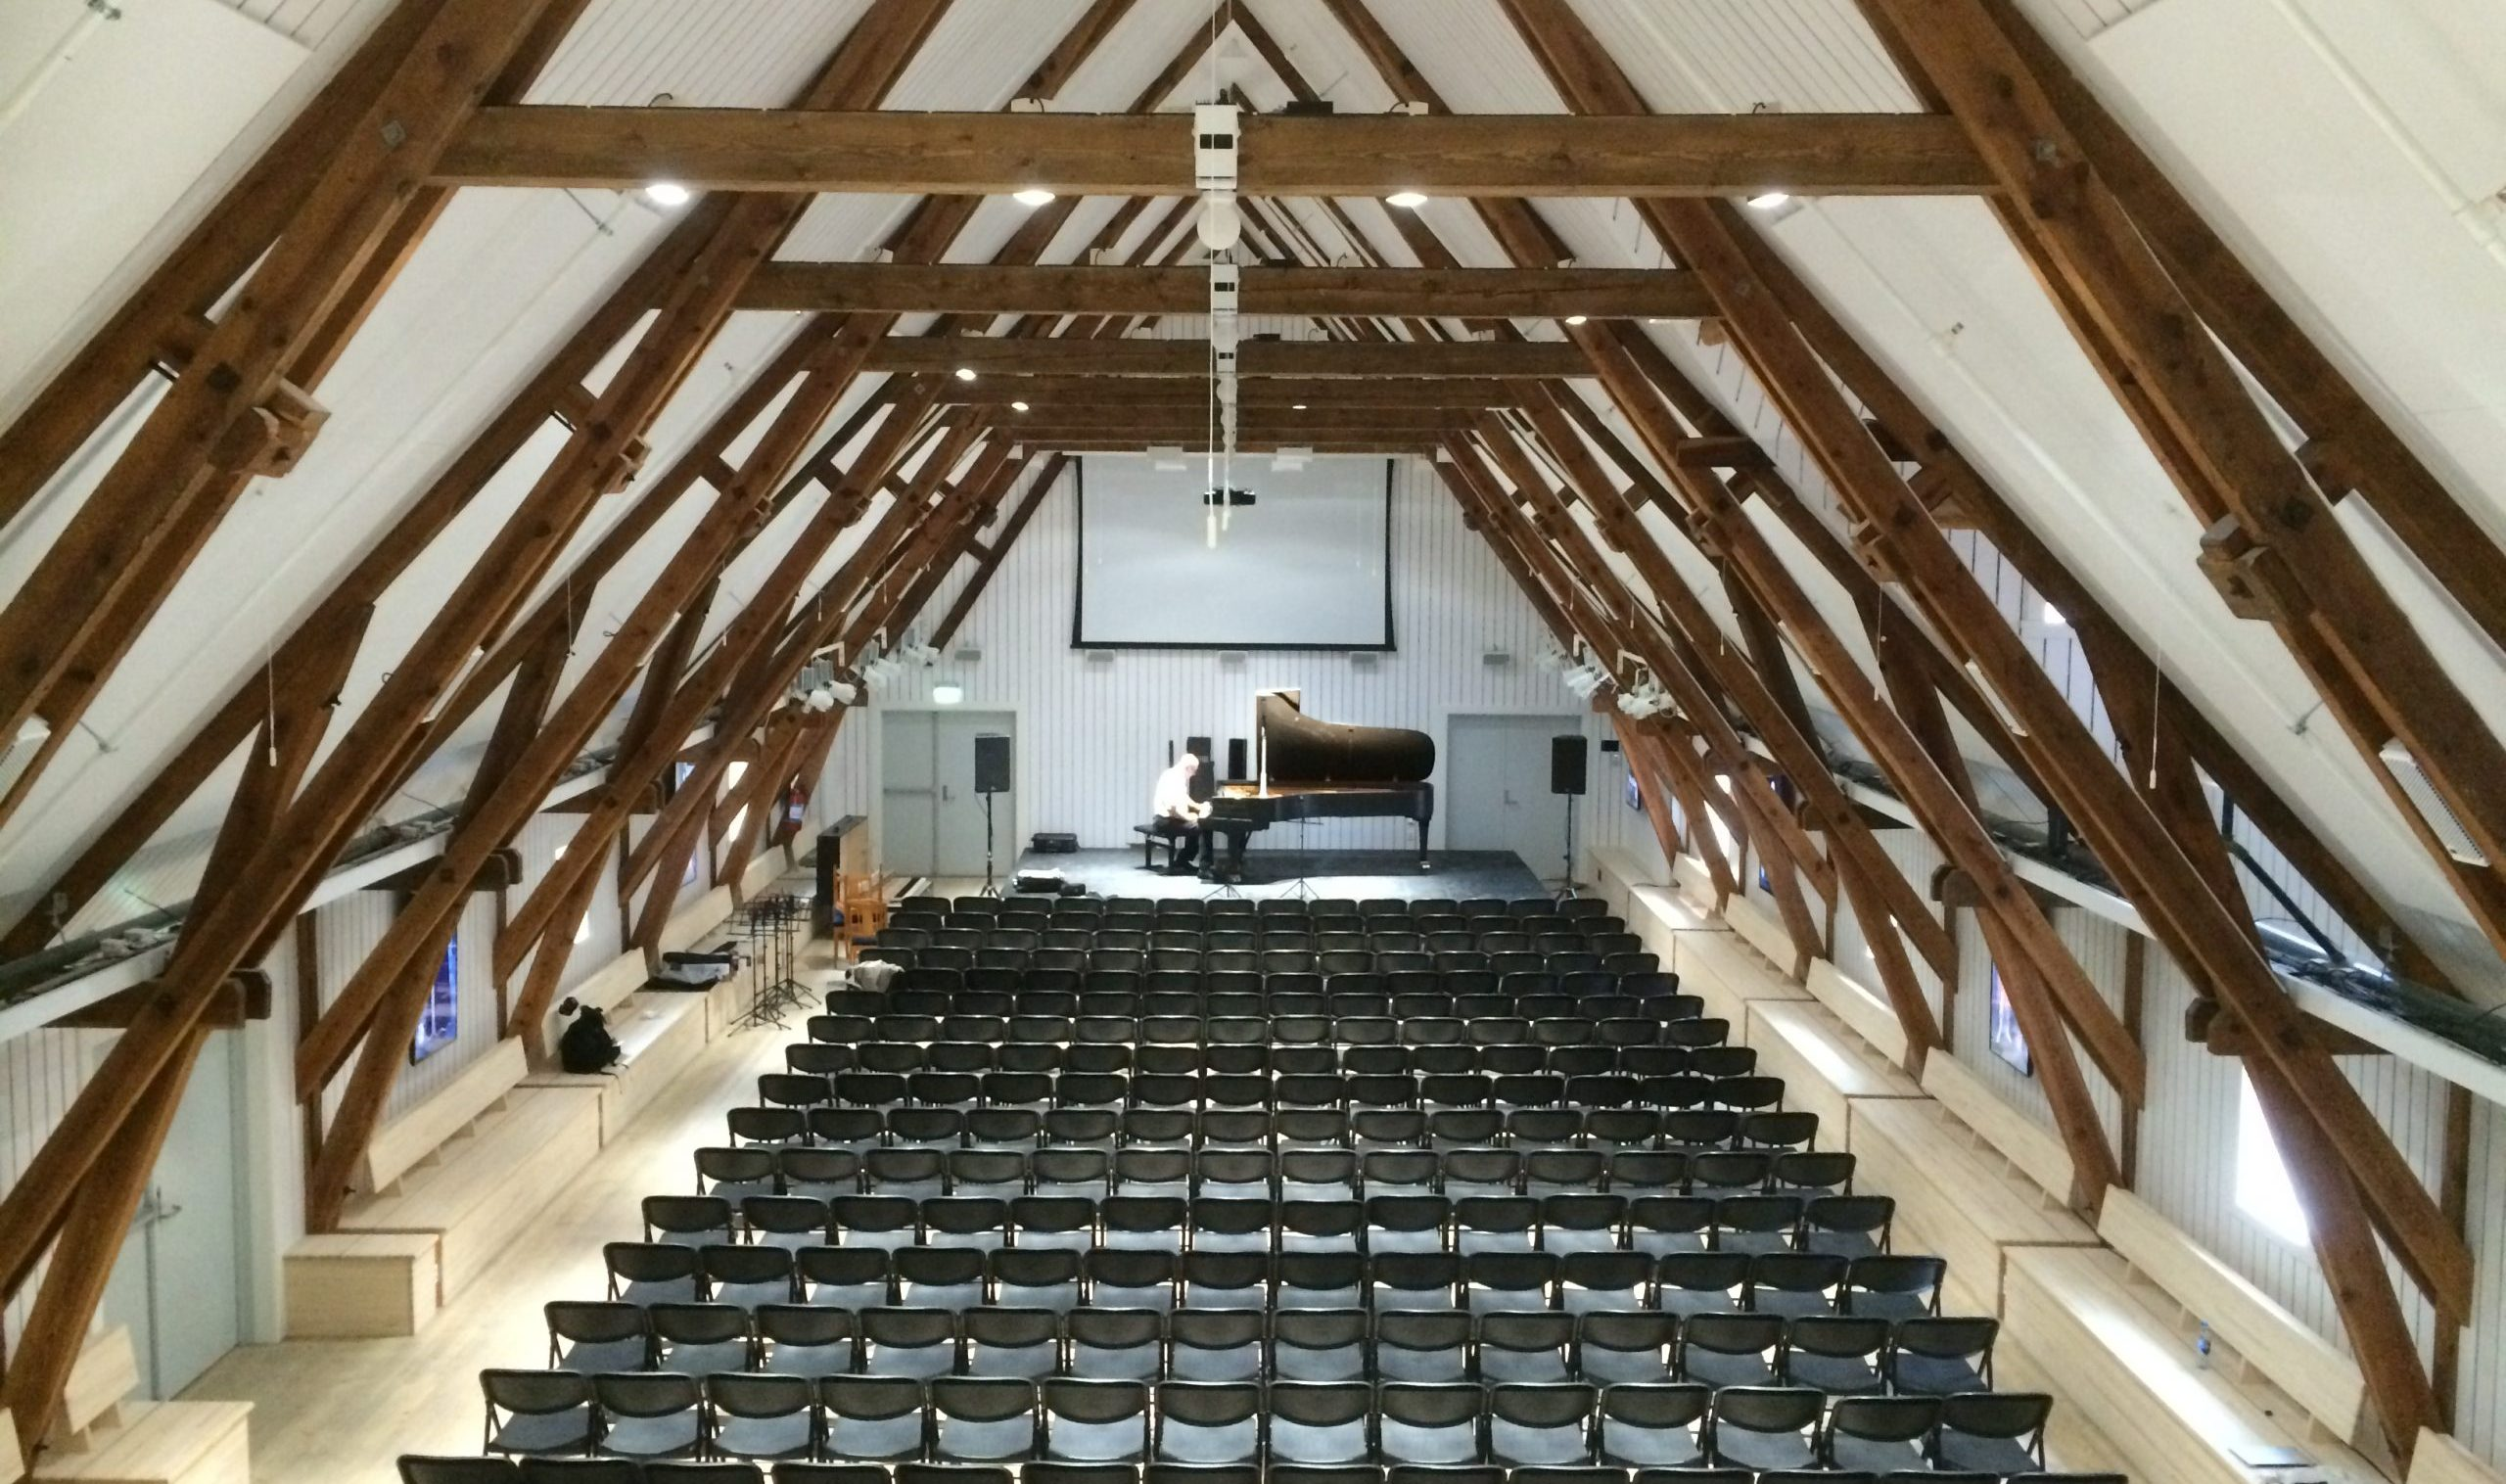 The barony has large premises well suited for concerts and conferences.